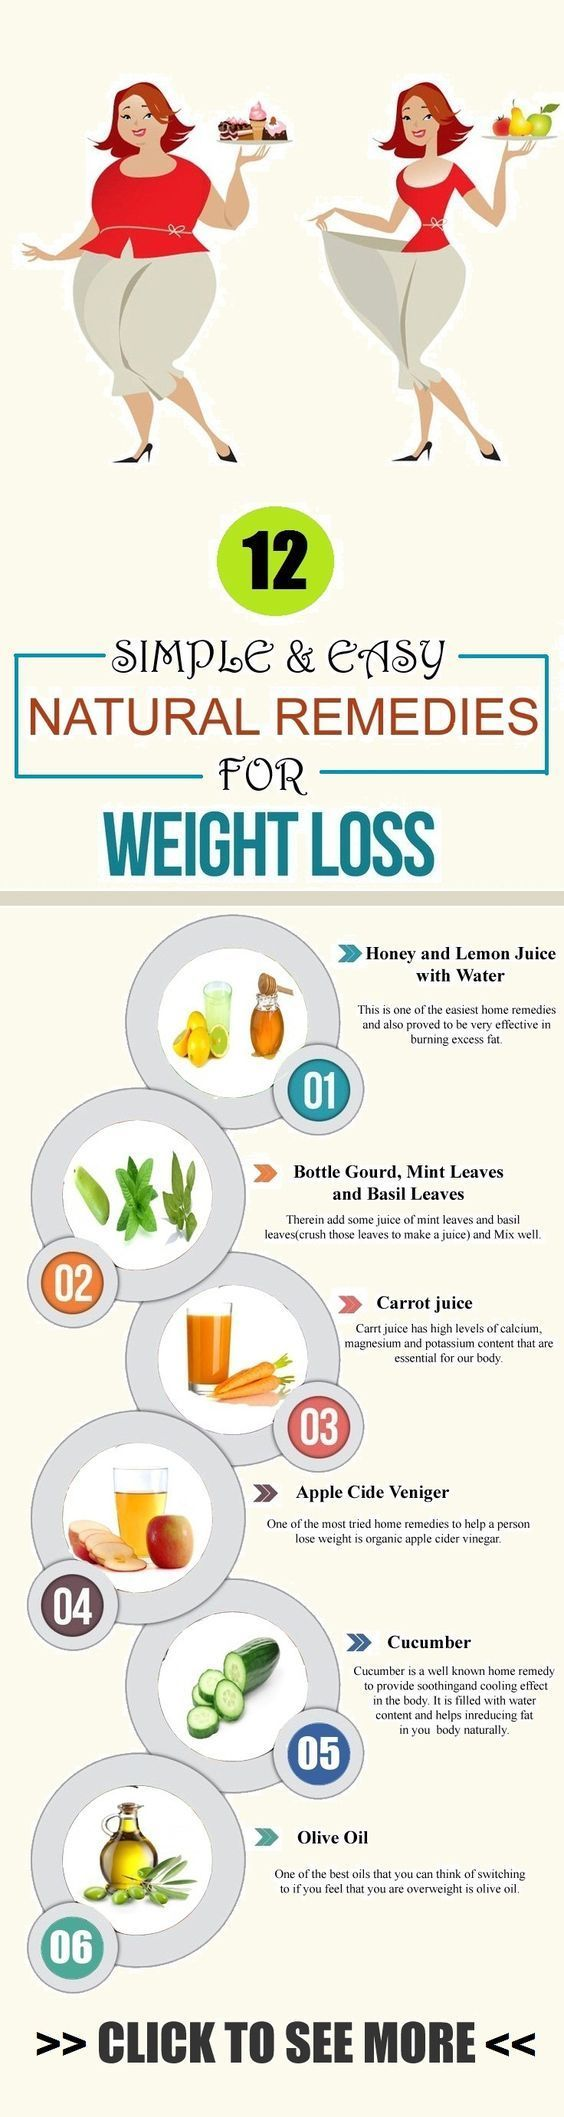 Juicing recipe to lose weight in 3 days